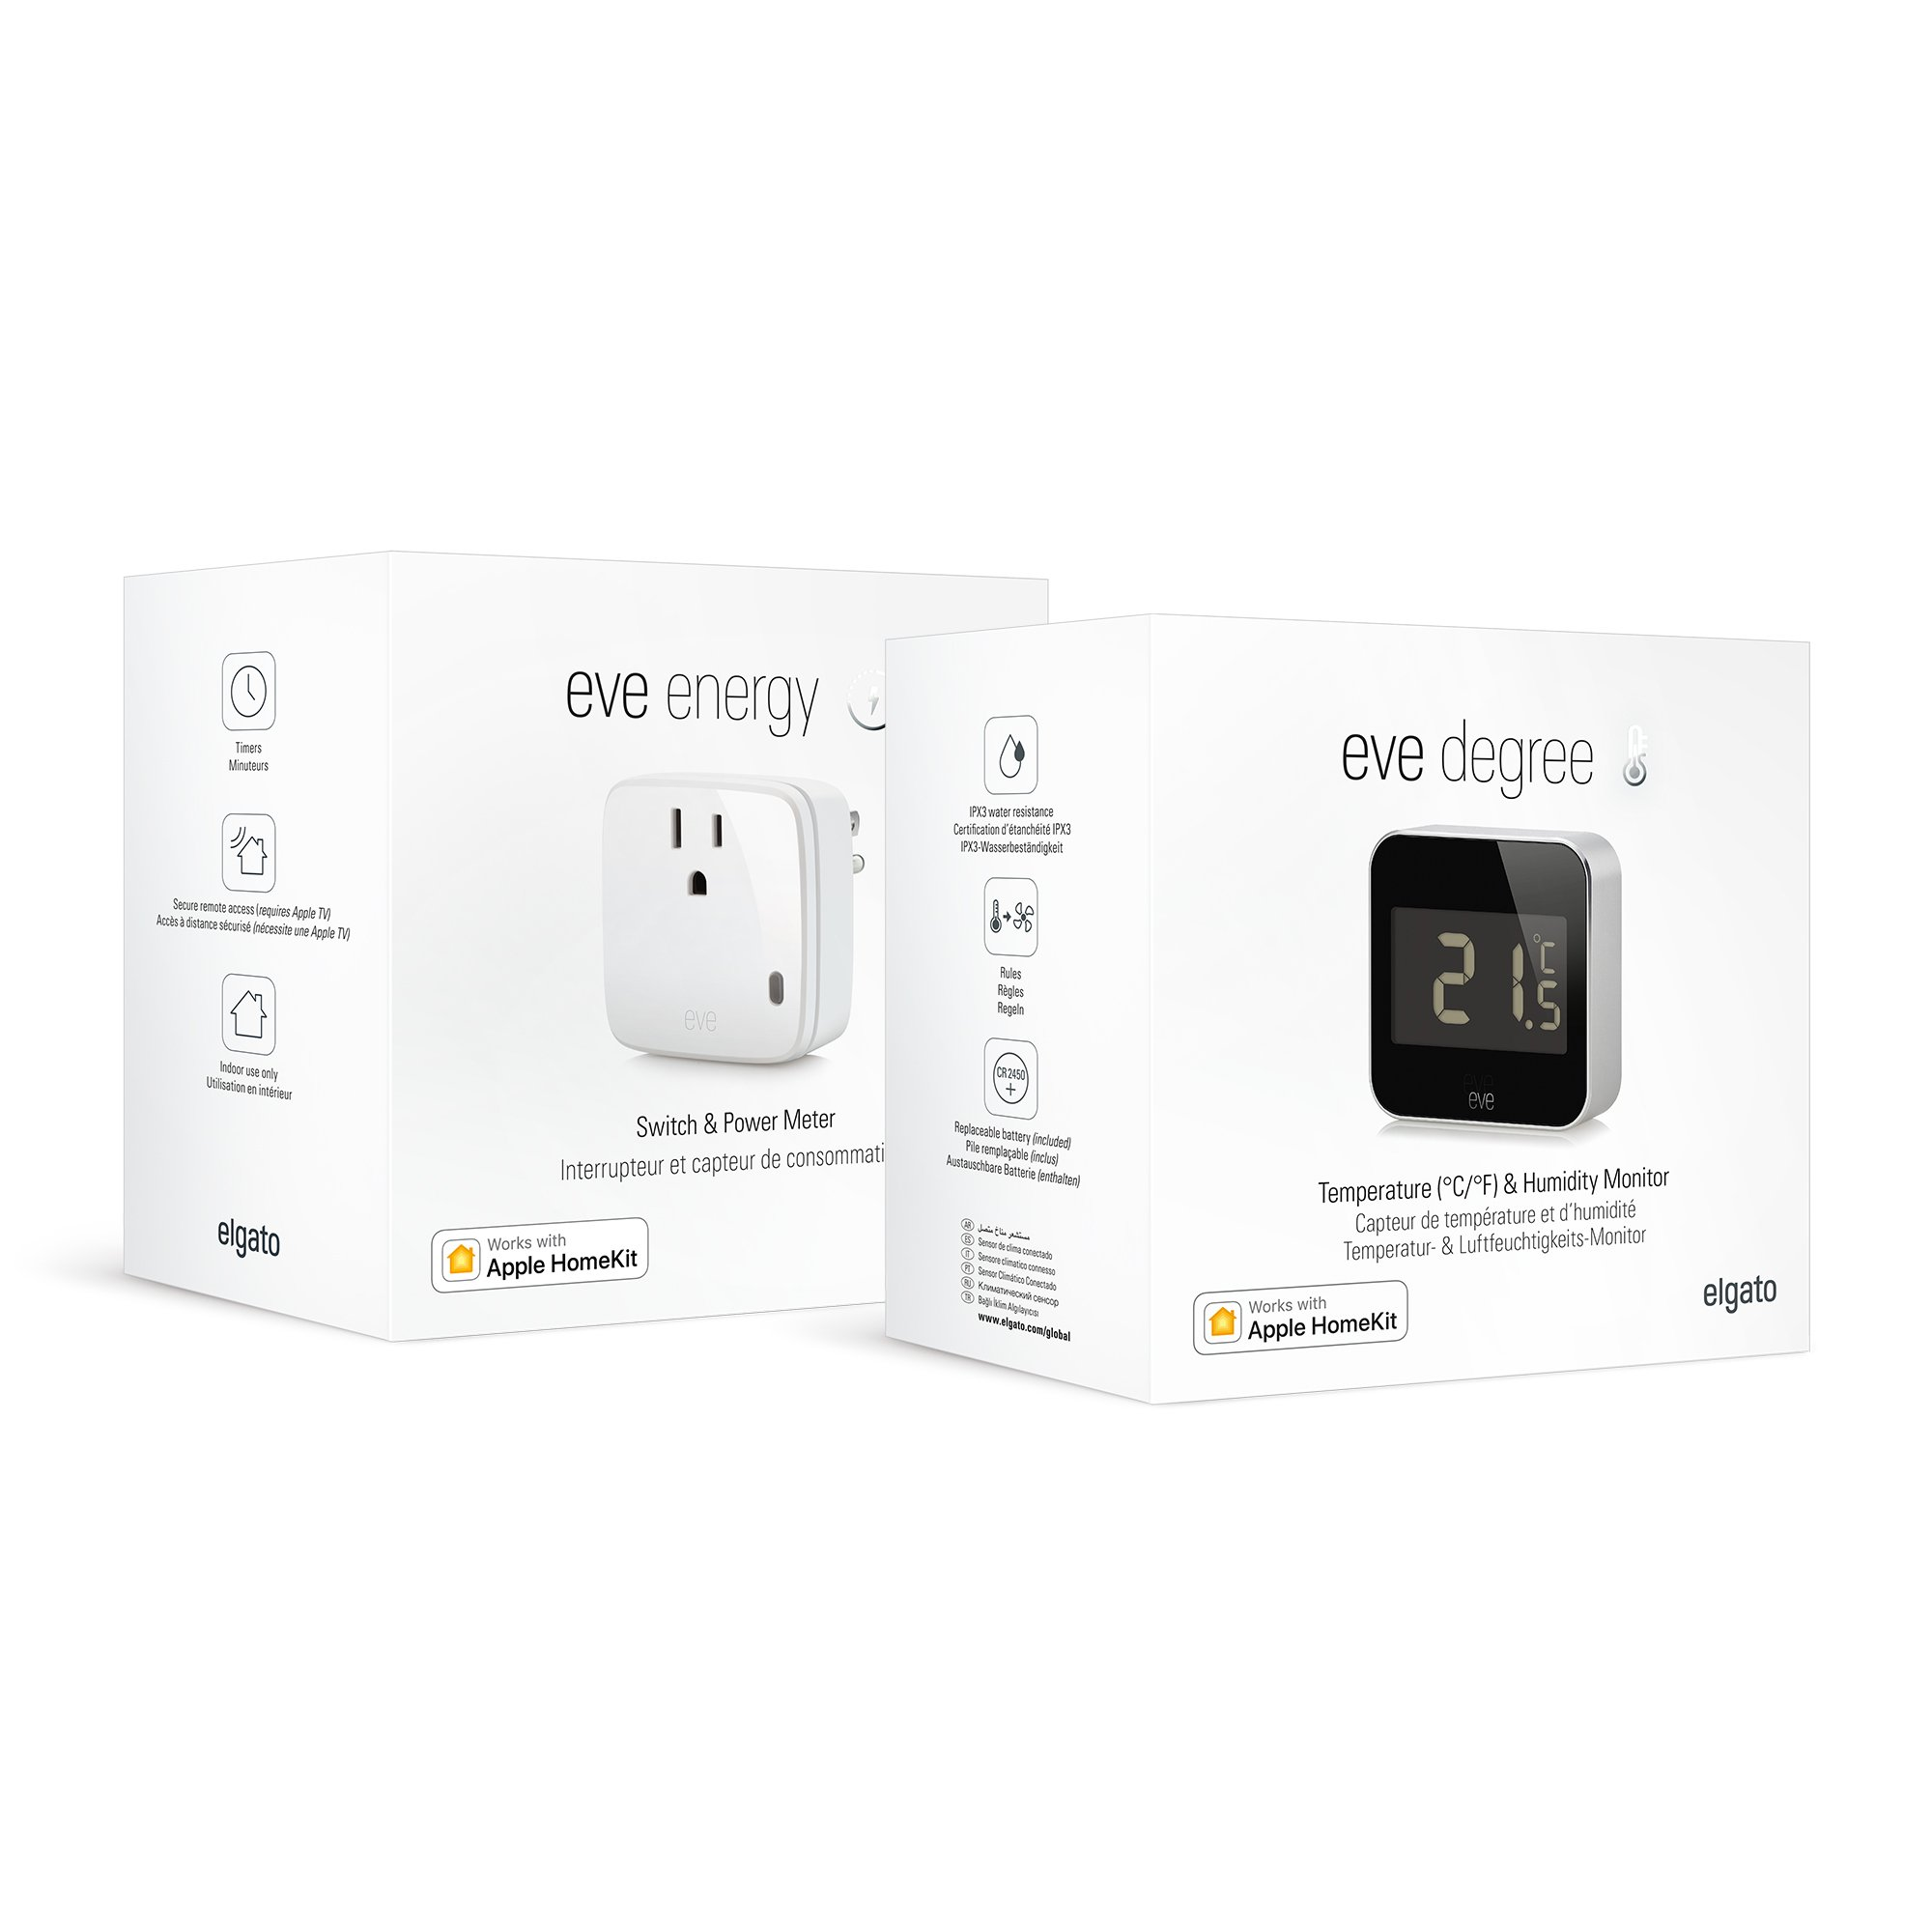 Air Care Kit: Elgato Eve Degree and Elgato Eve Energy, with Apple HomeKit technology, Bluetooth Low